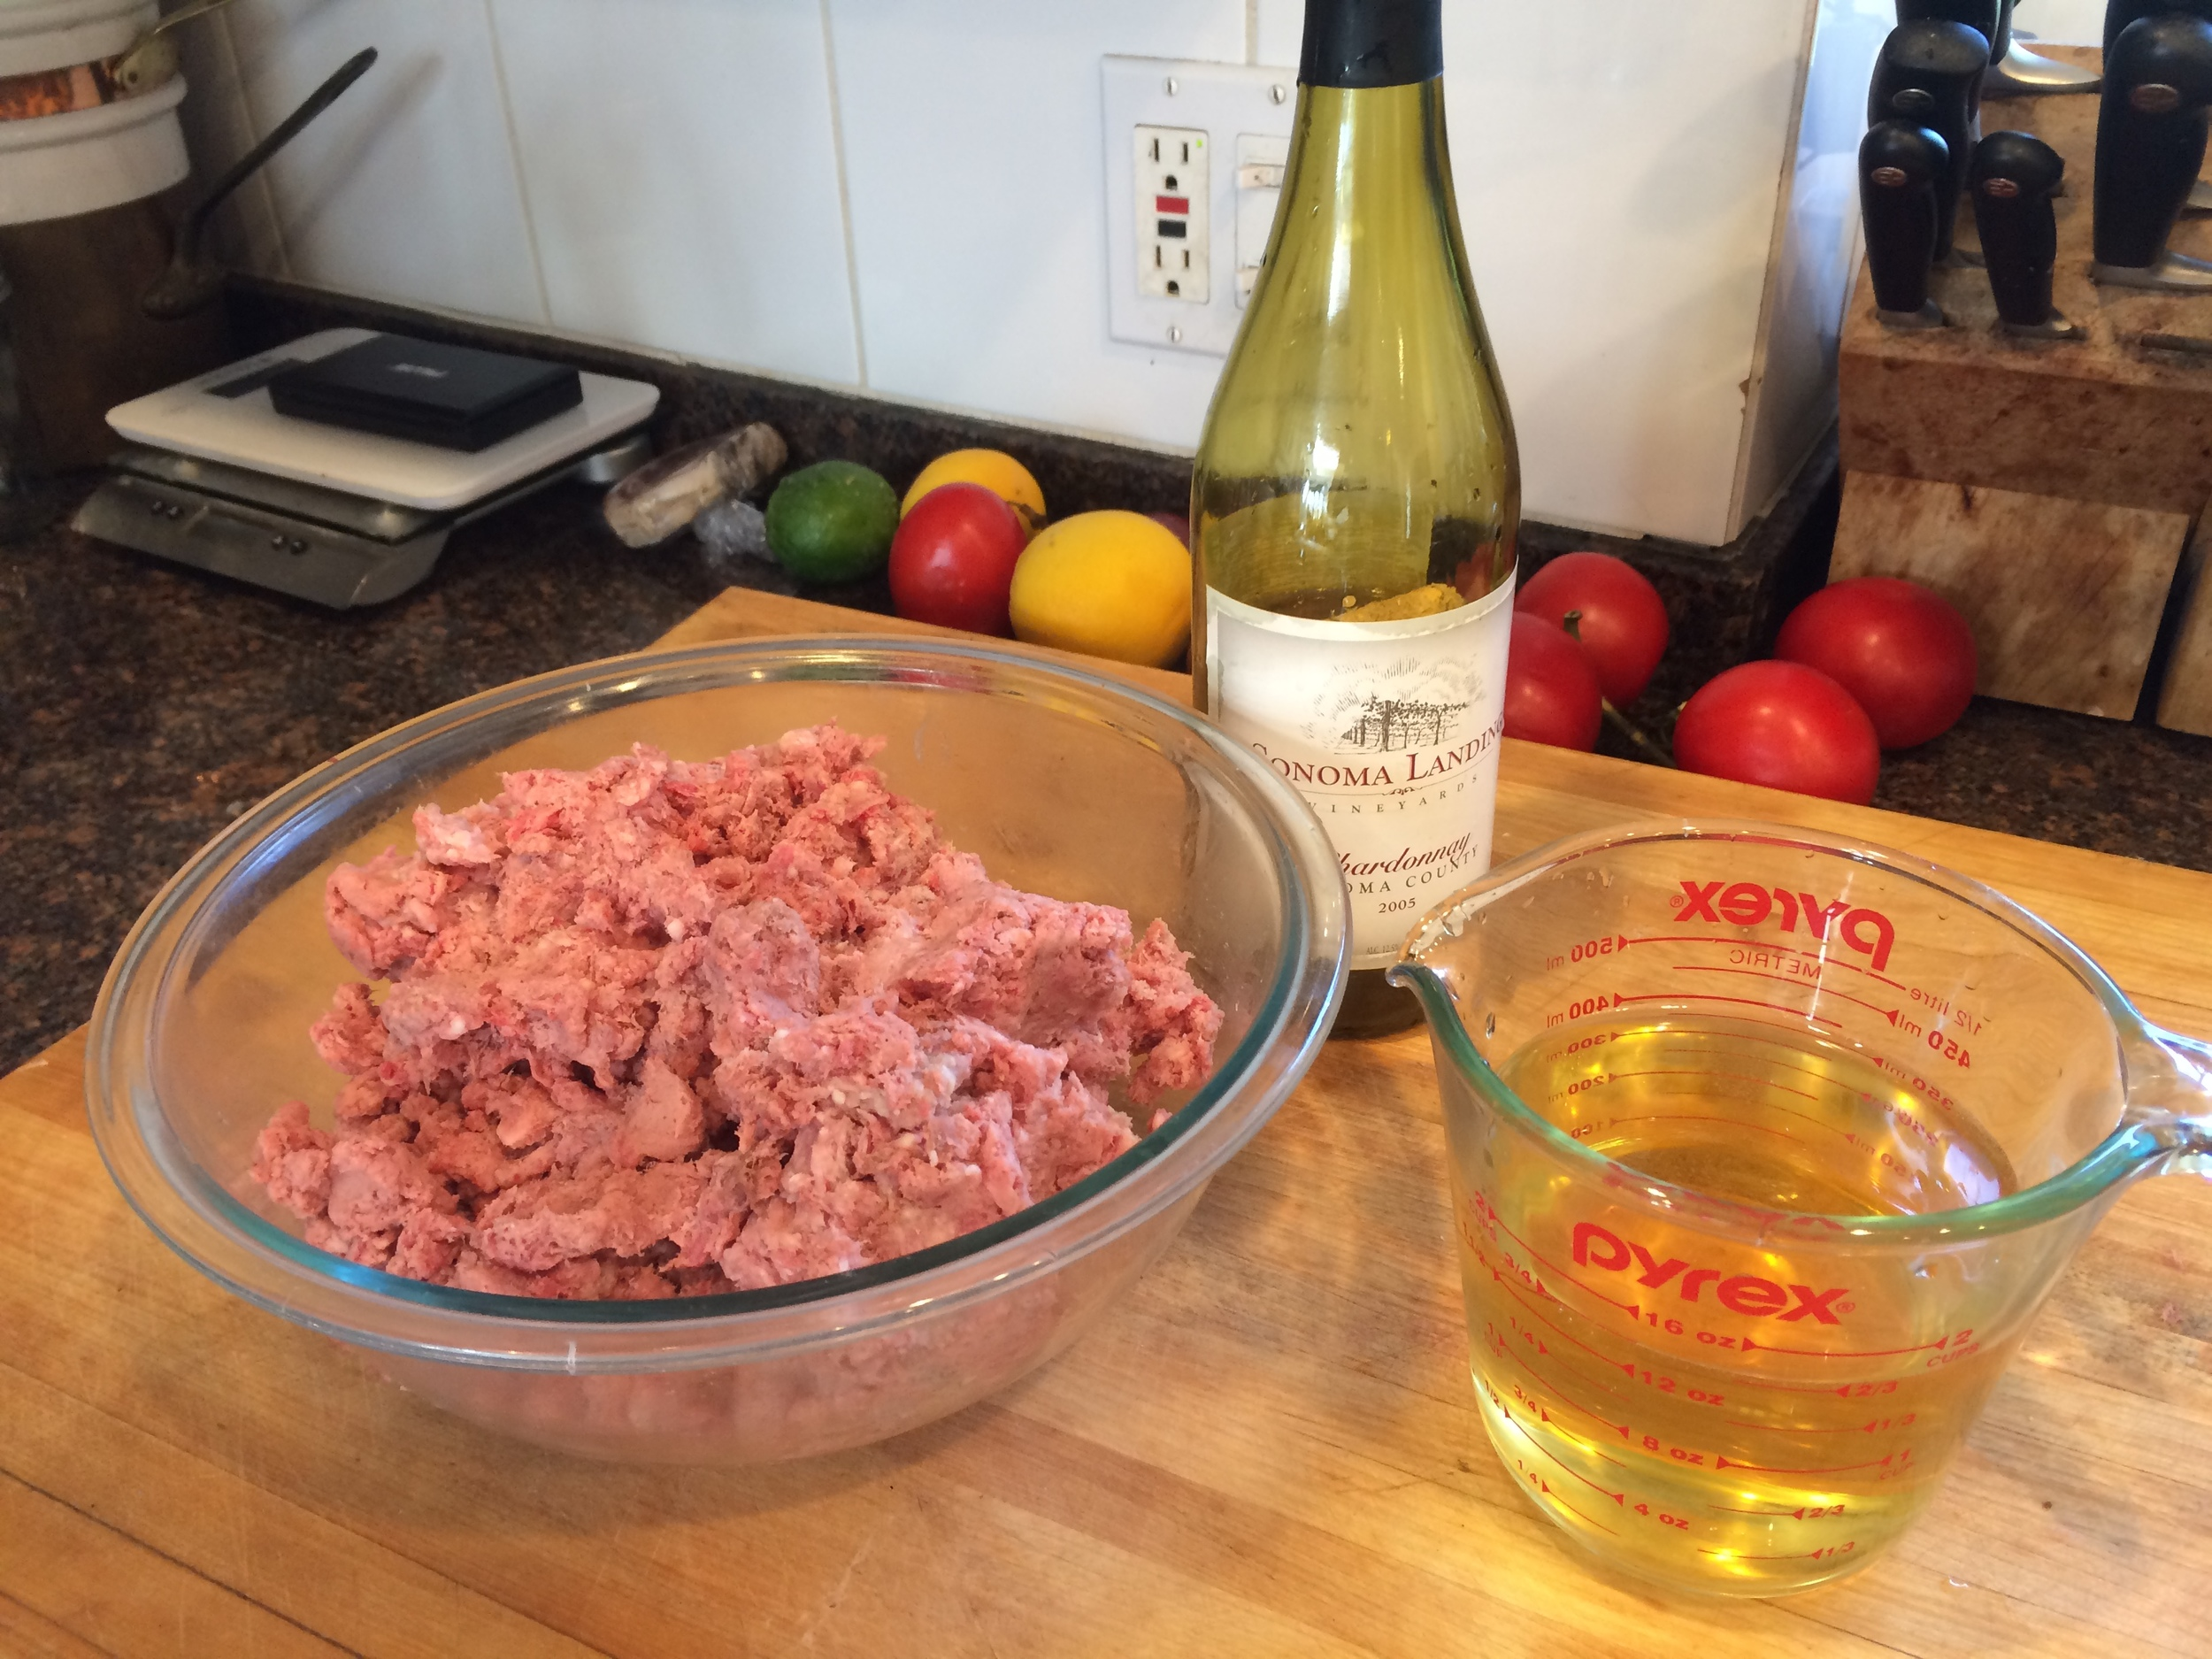 Add wine to the meat to loosen it before browning